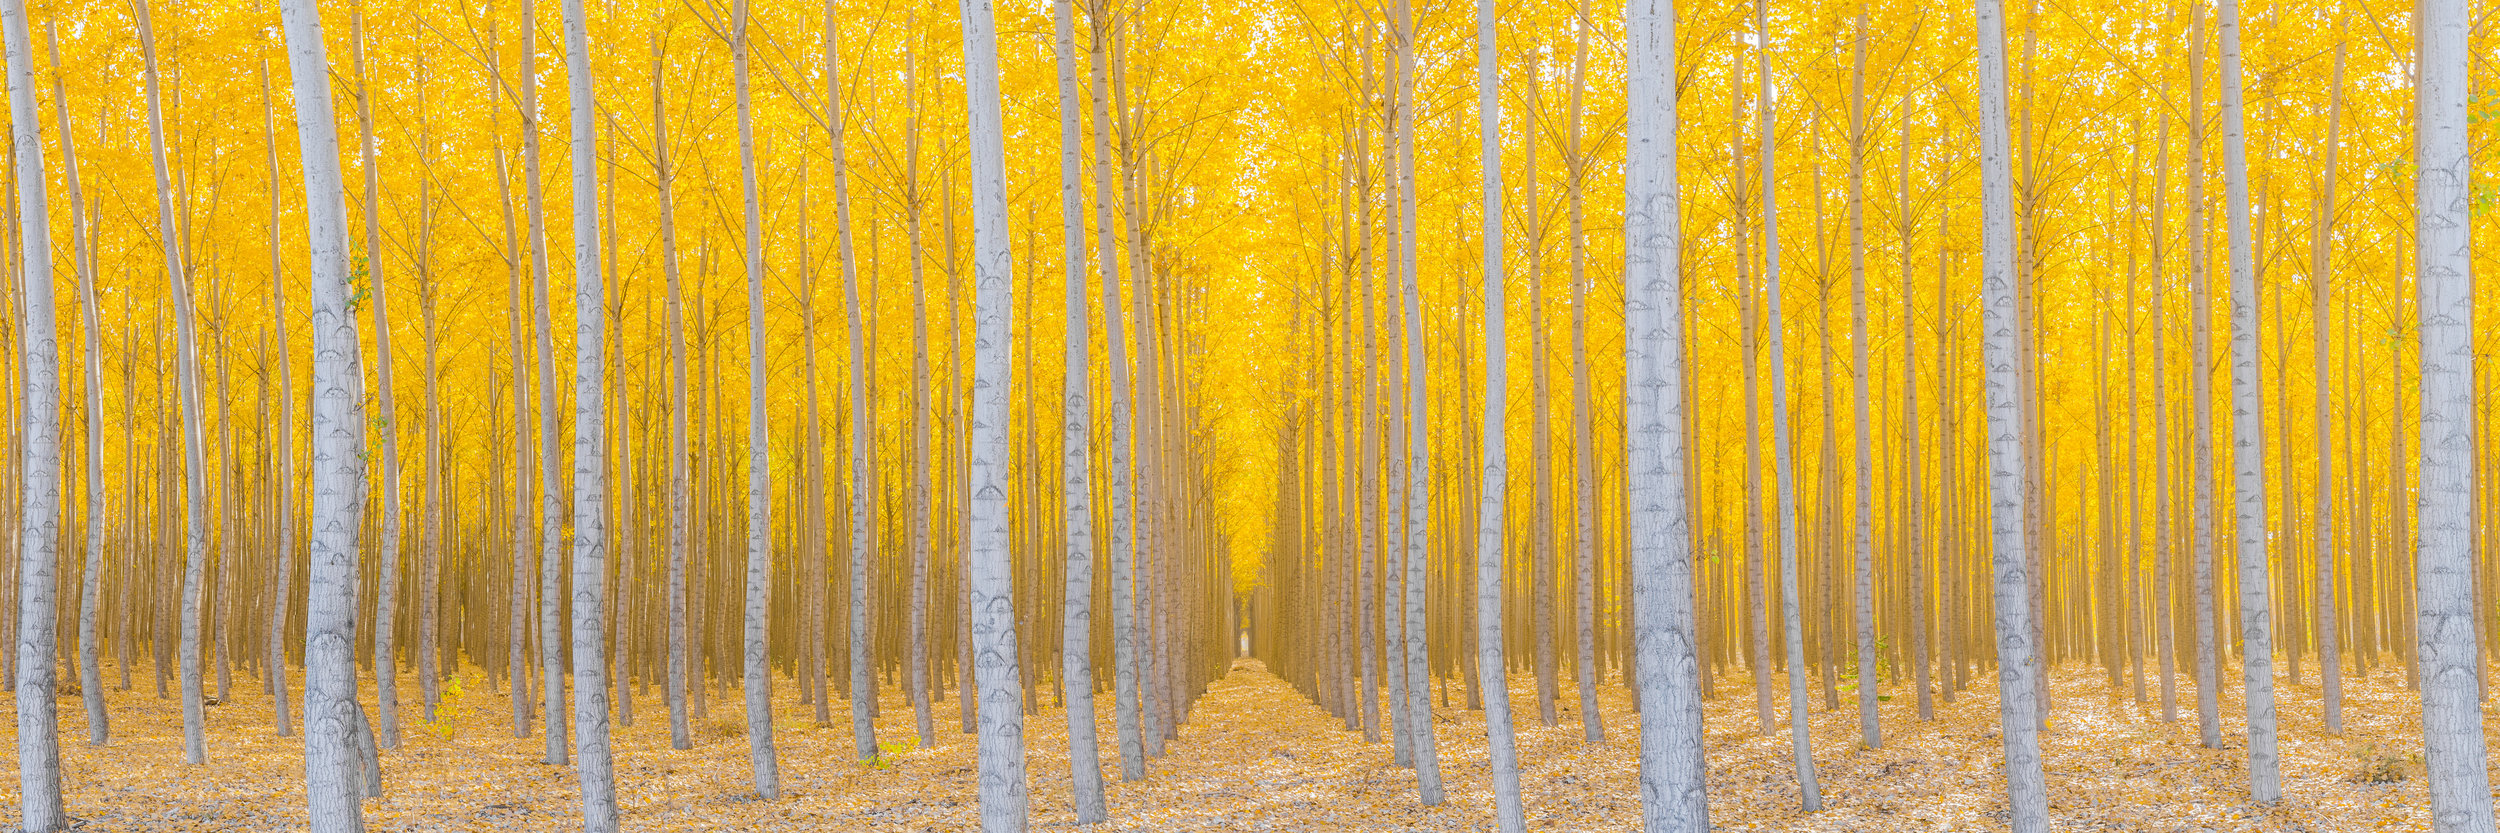 Silence is Golden (pano)